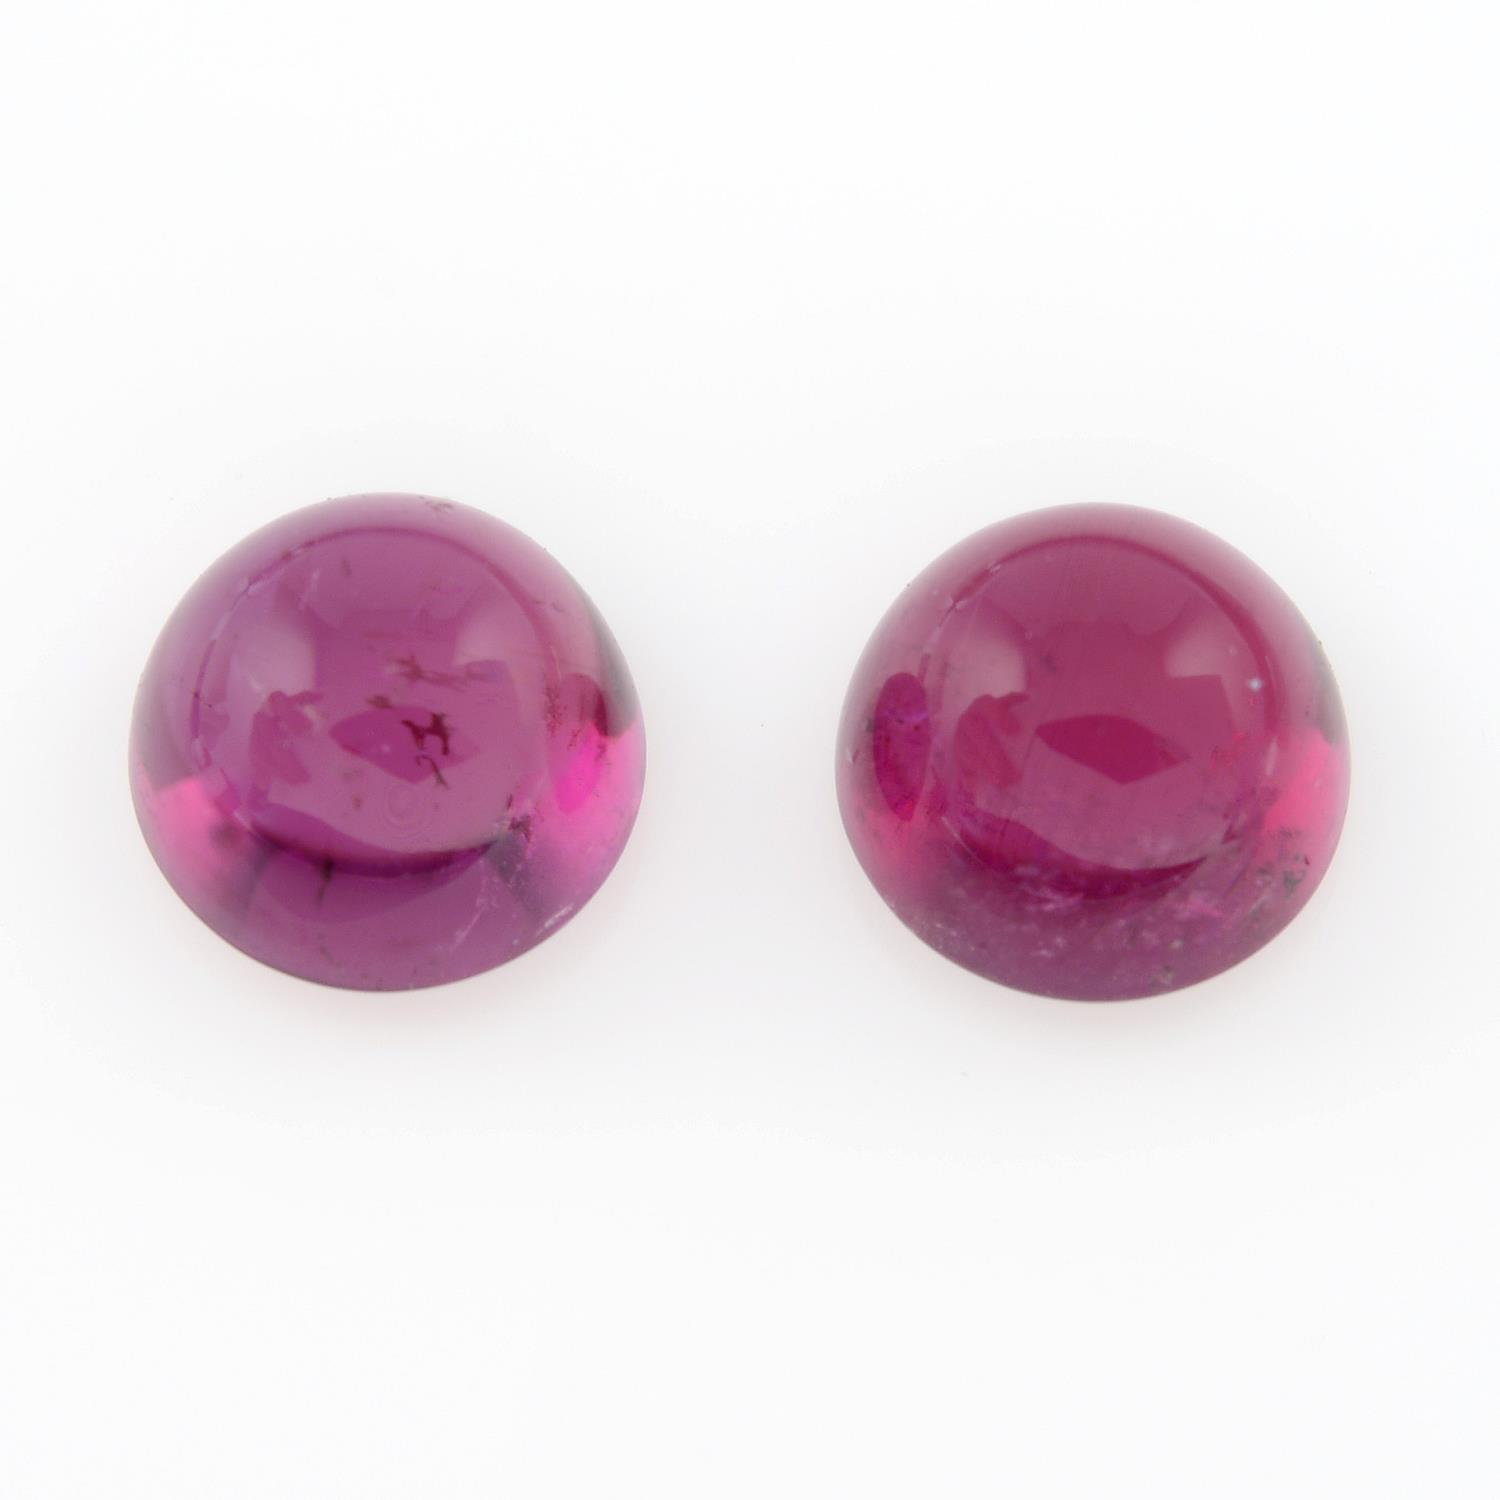 Pair of rubellite cabochons, weighing 3.66ct.